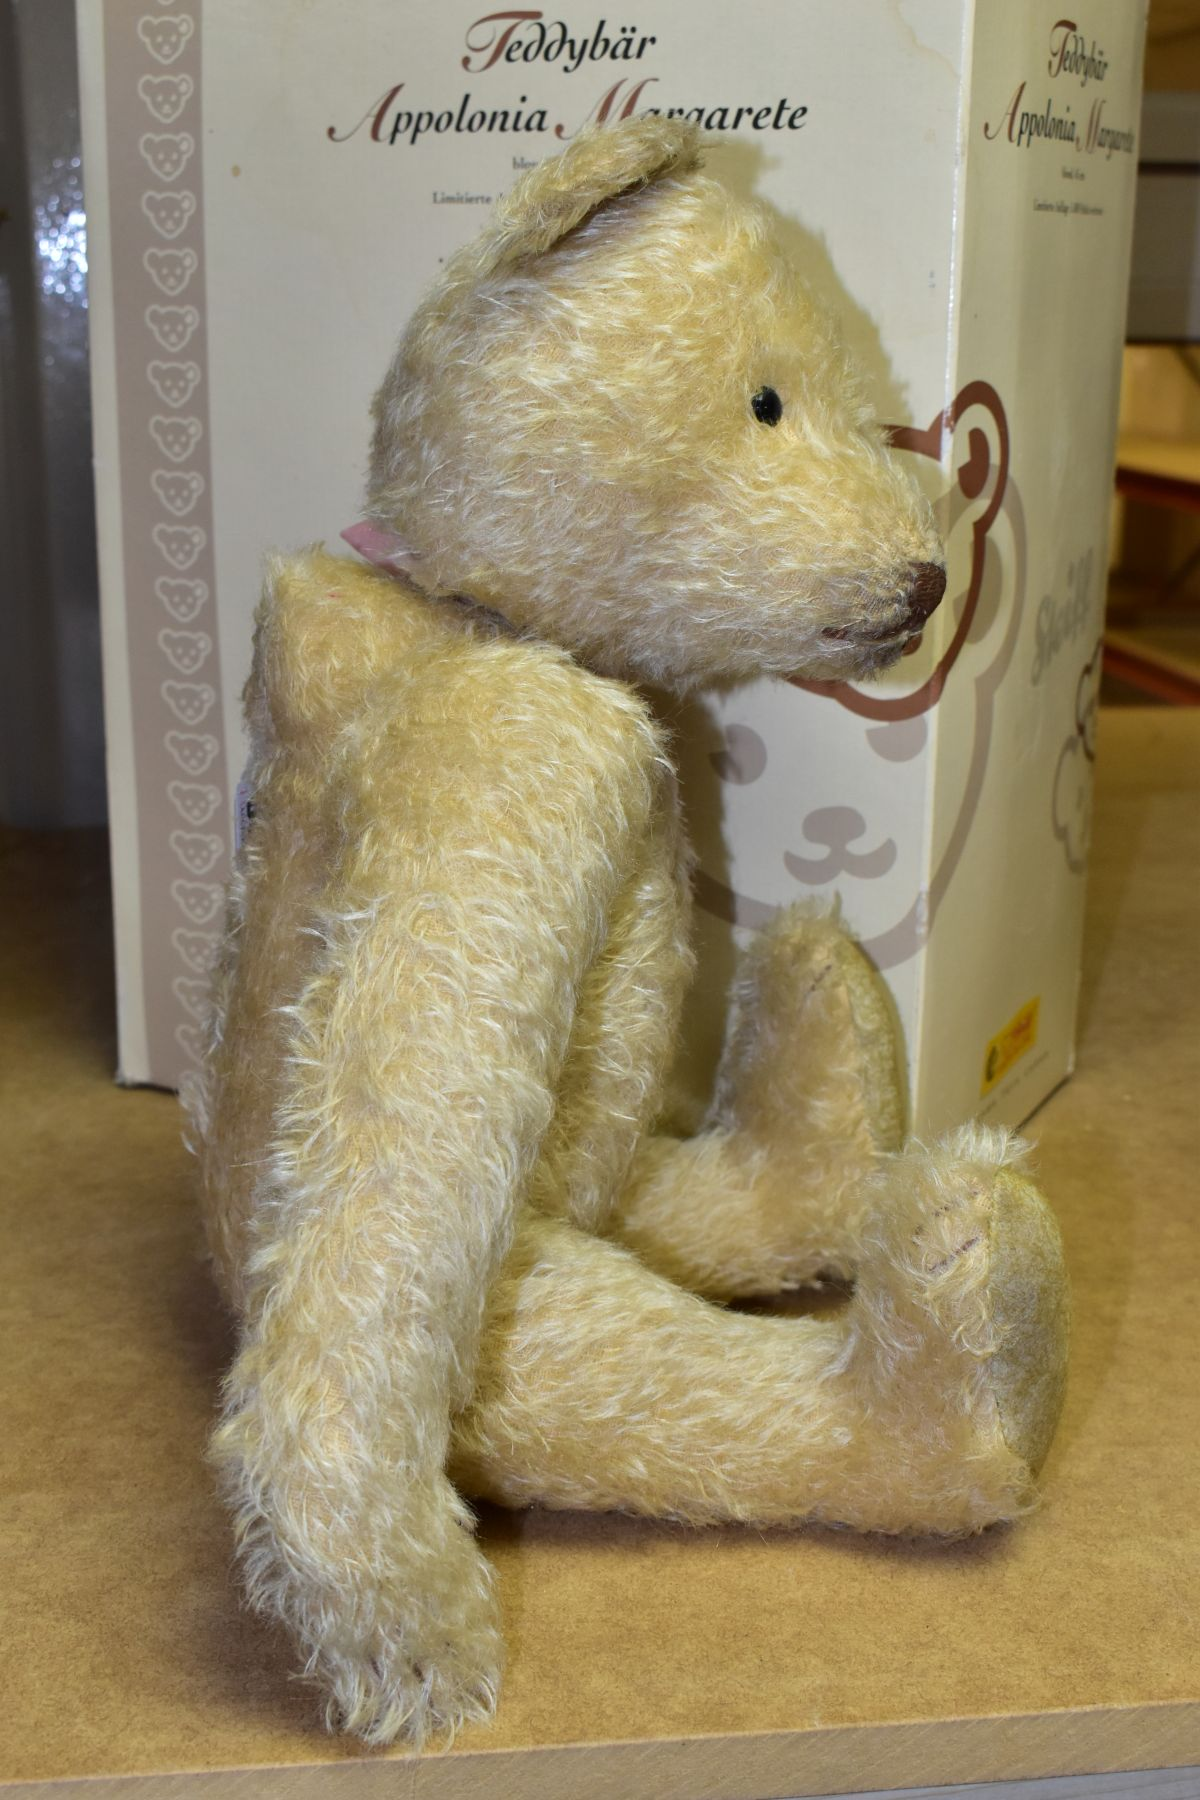 A BOXED STEIFF LIMITED EDITION APPOLONIA MARGARETE TEDDYBEAR, No. 038112, limited edition No. 1171 - Image 4 of 5